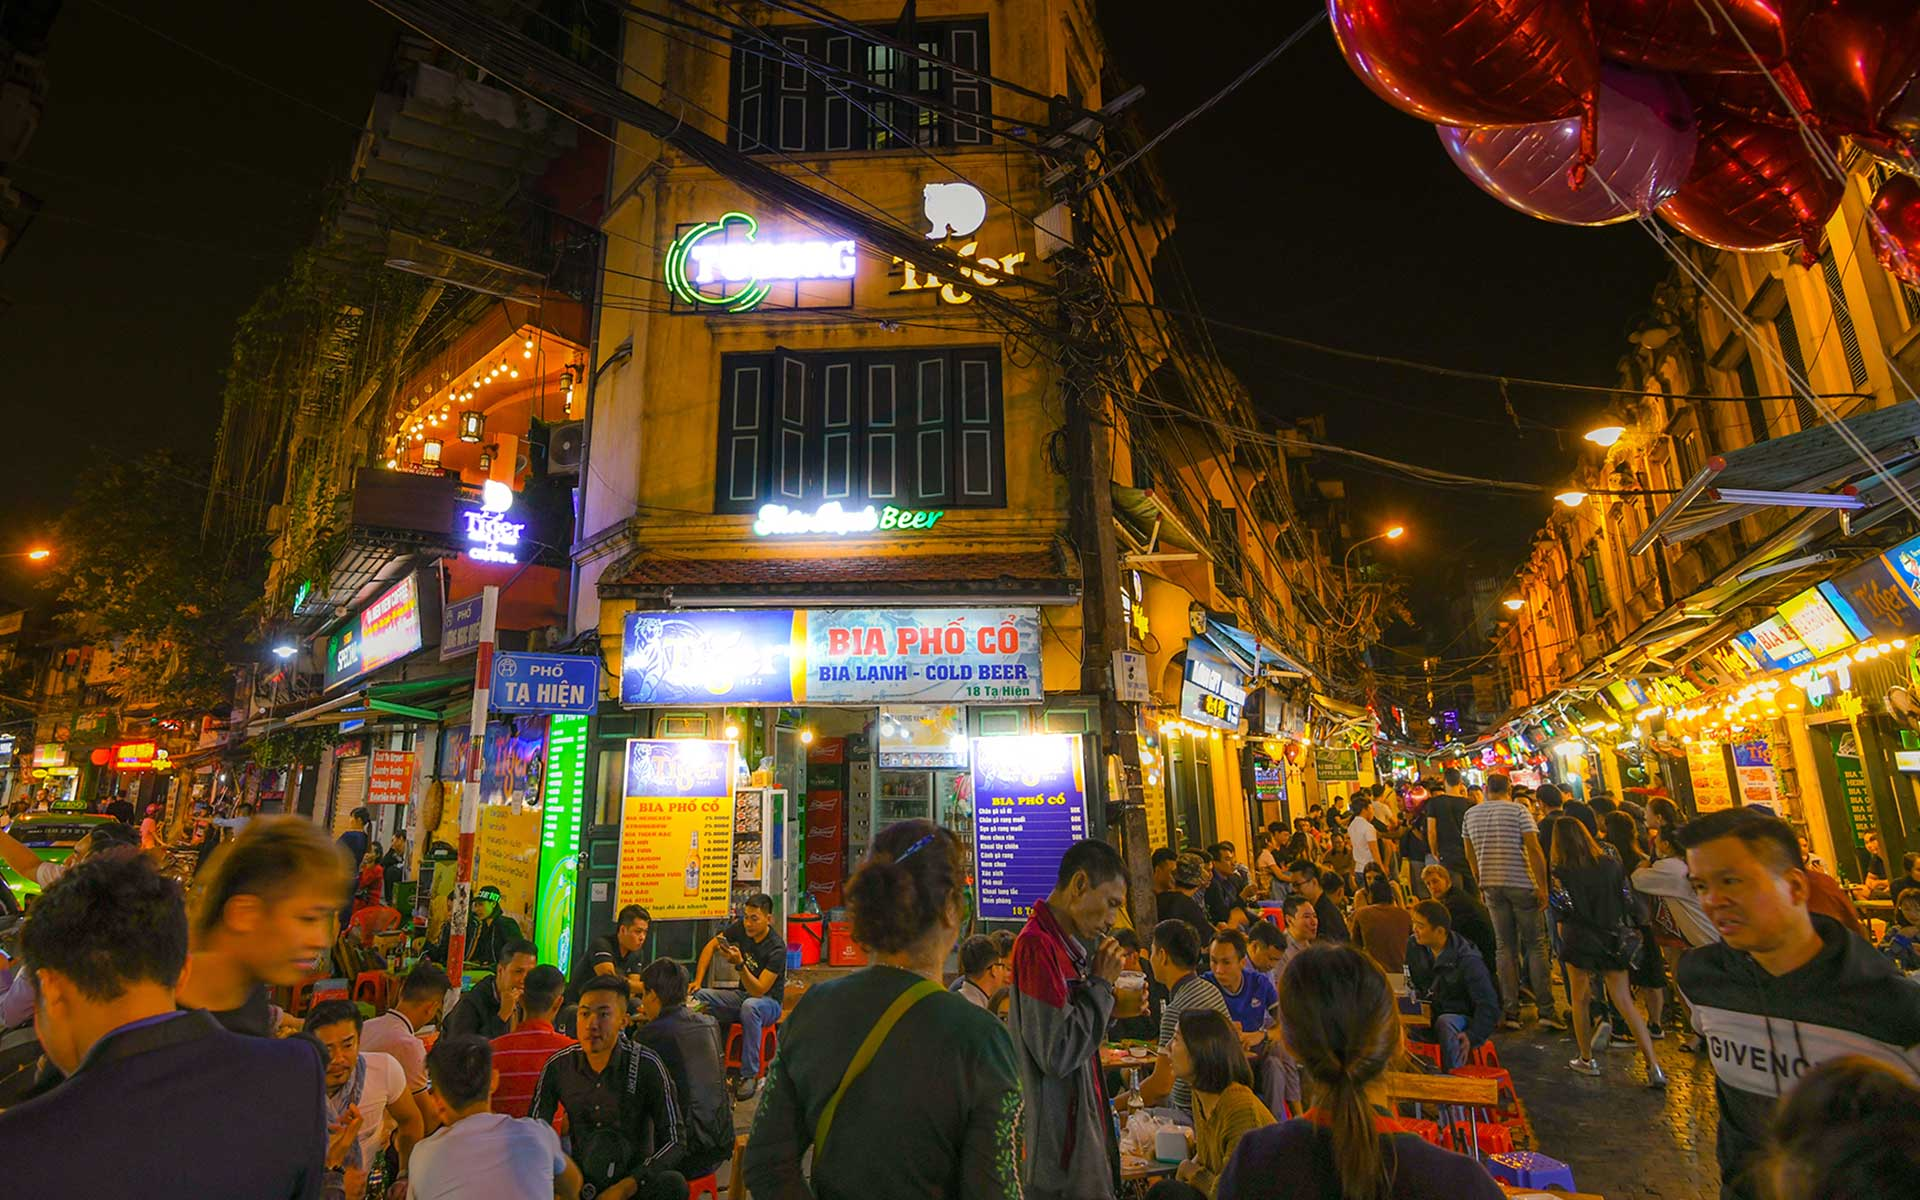 Nightlife of Hanoi at Bia Hoi Junction in Old Quarter